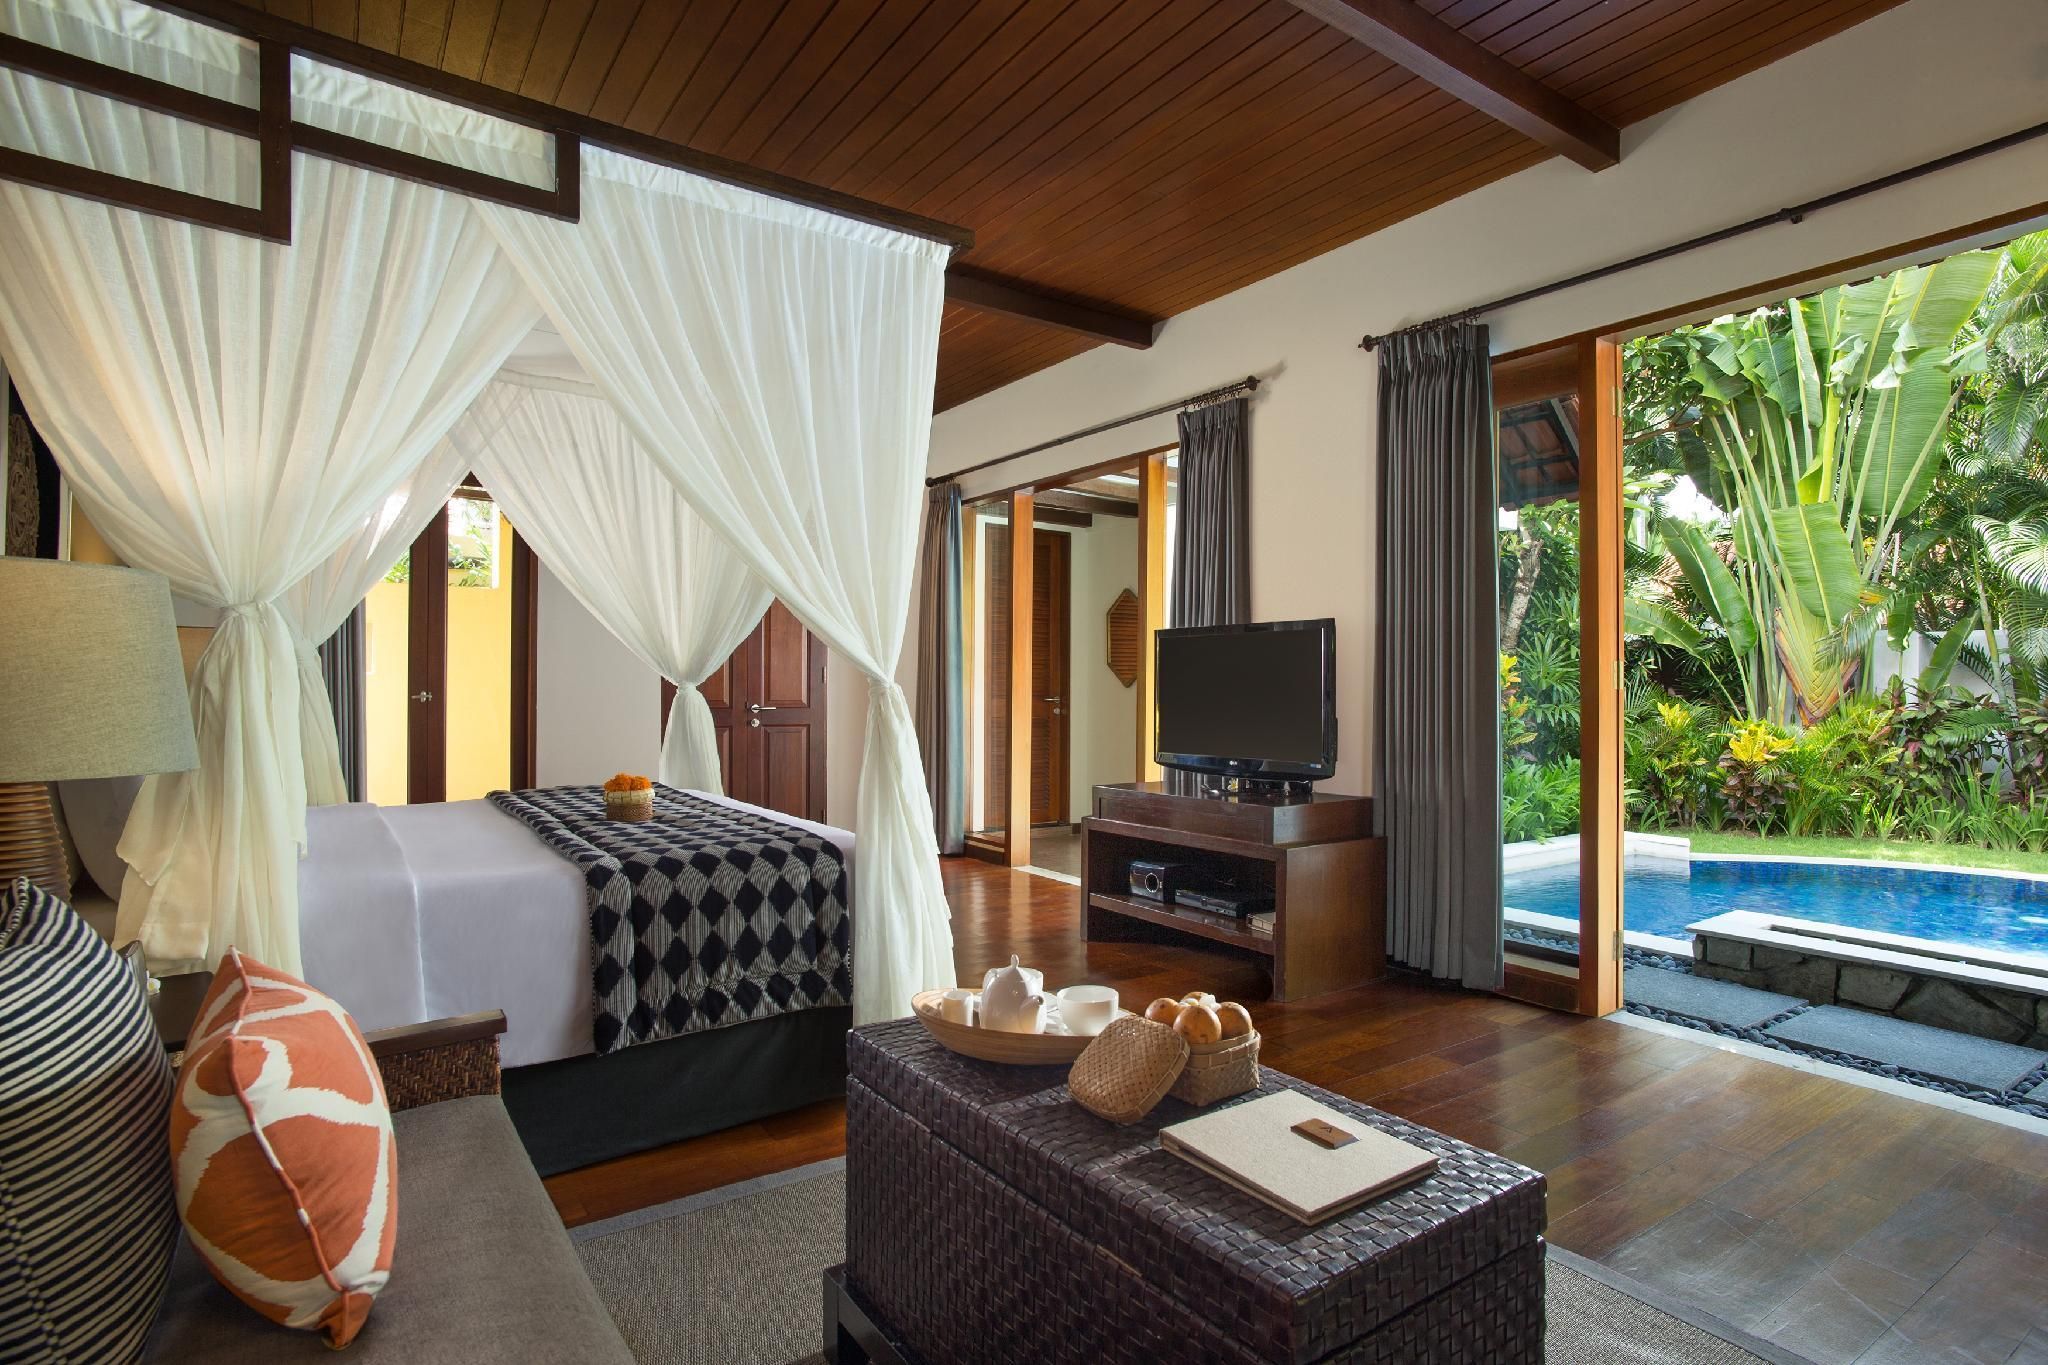 Honeymoon Package - 1-Bedroom Pool Villa